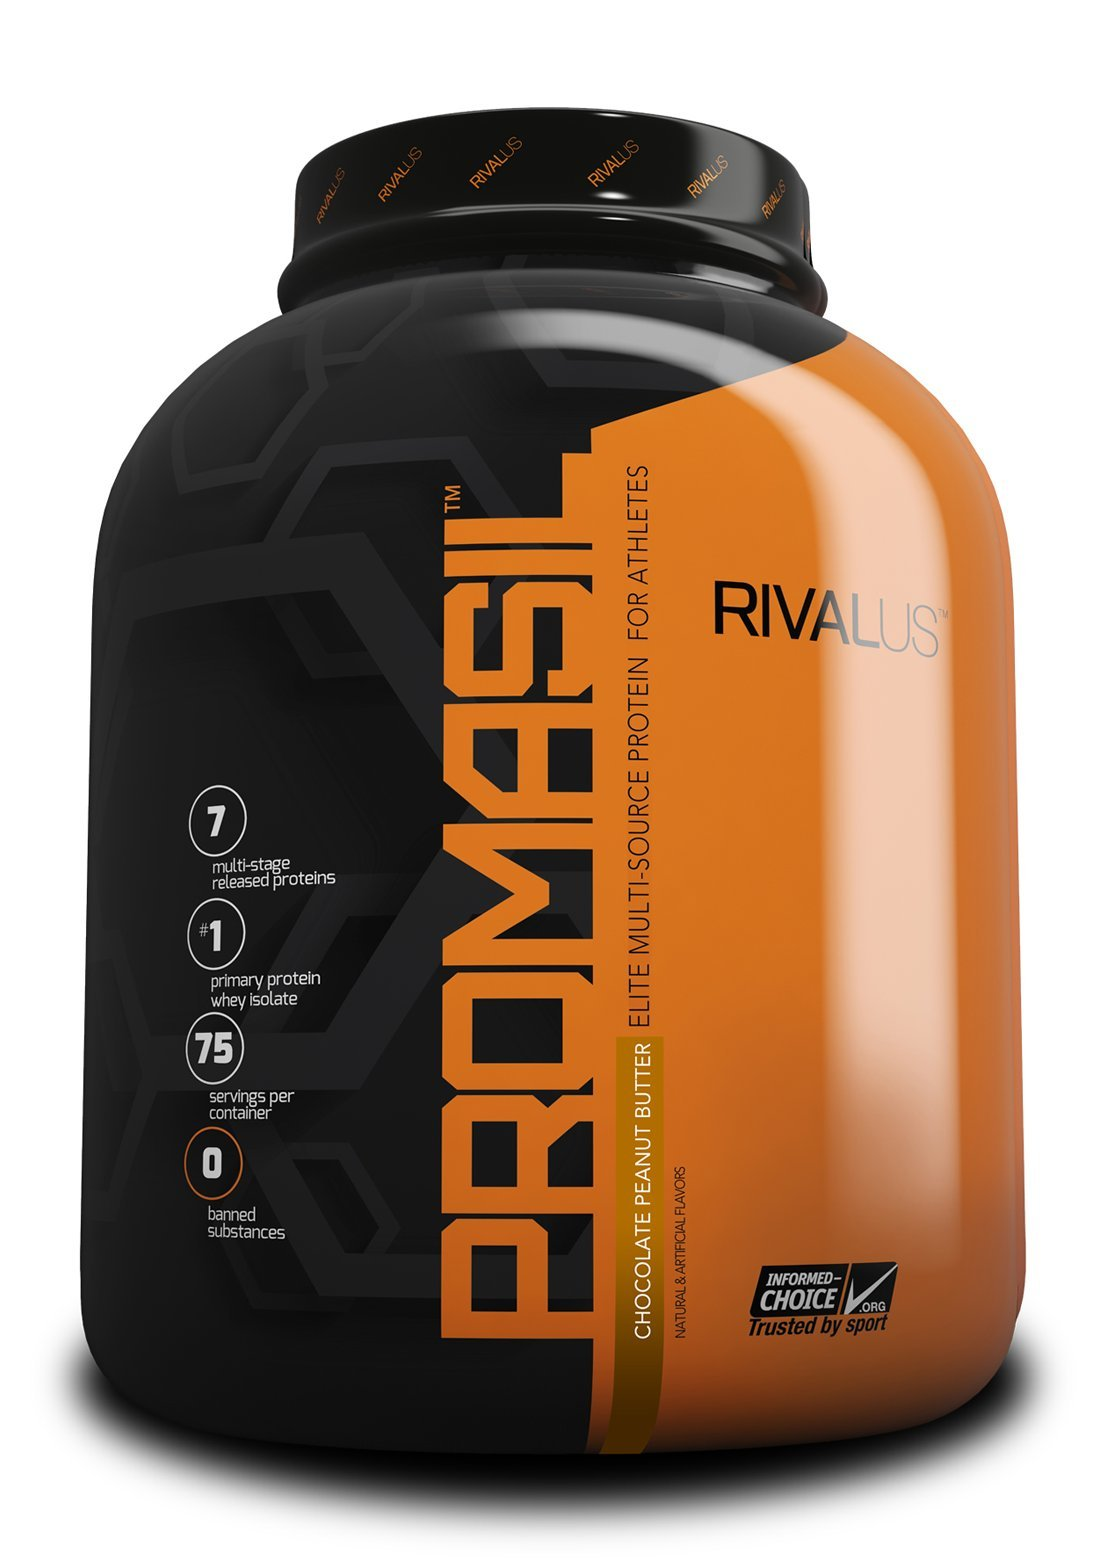 Promasil Chocolate Peanut Butter 5lb by Rivalus (Image #1)